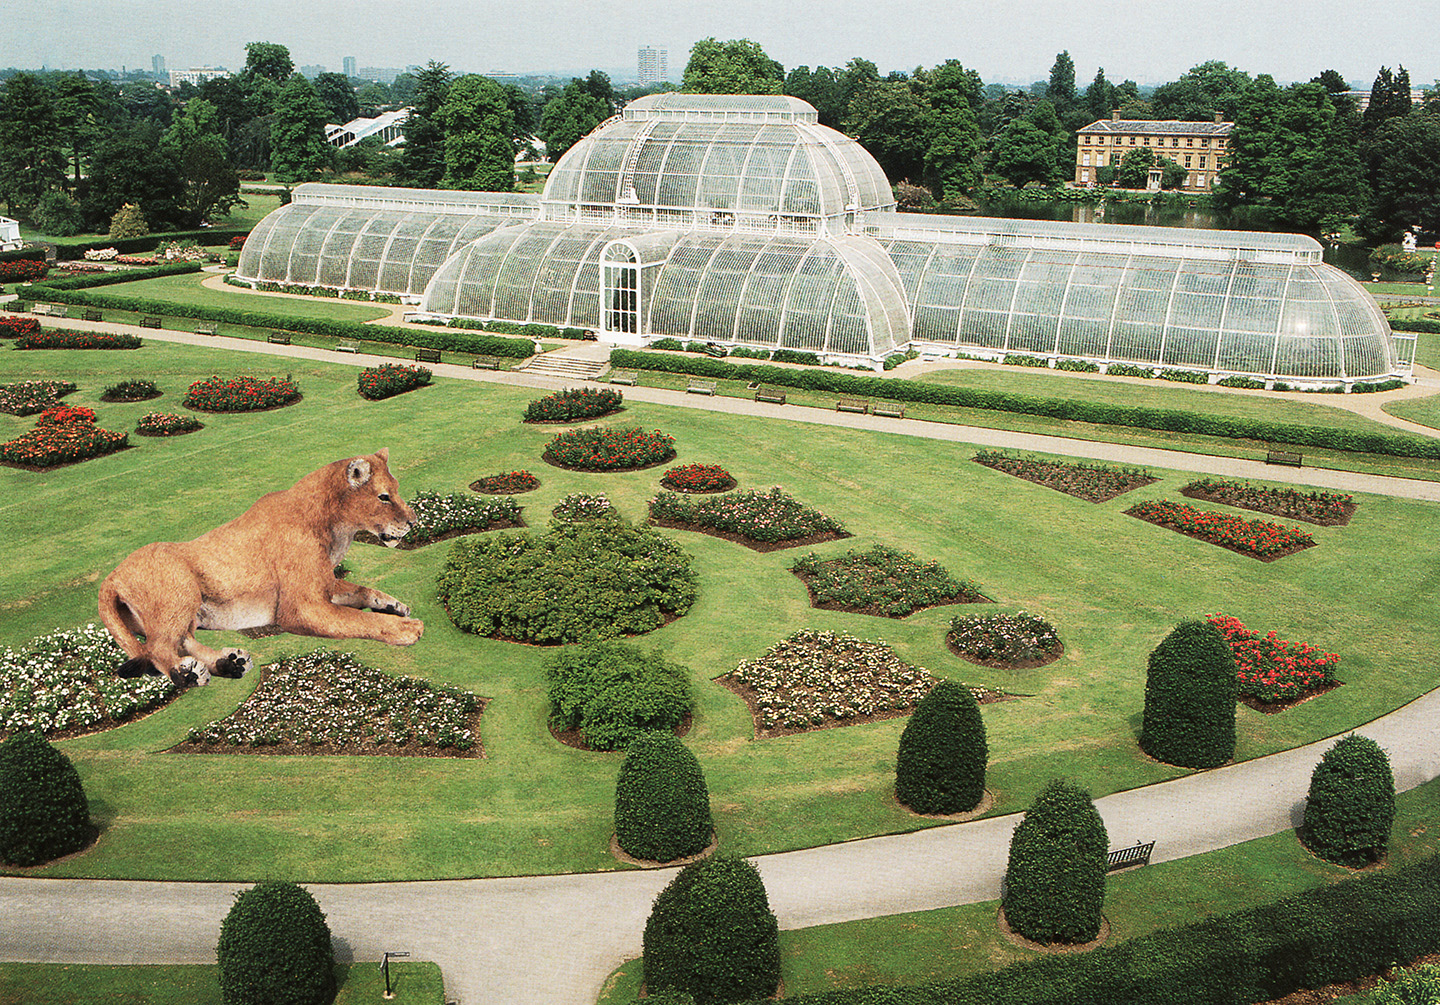 Lioness at Kew Gardens